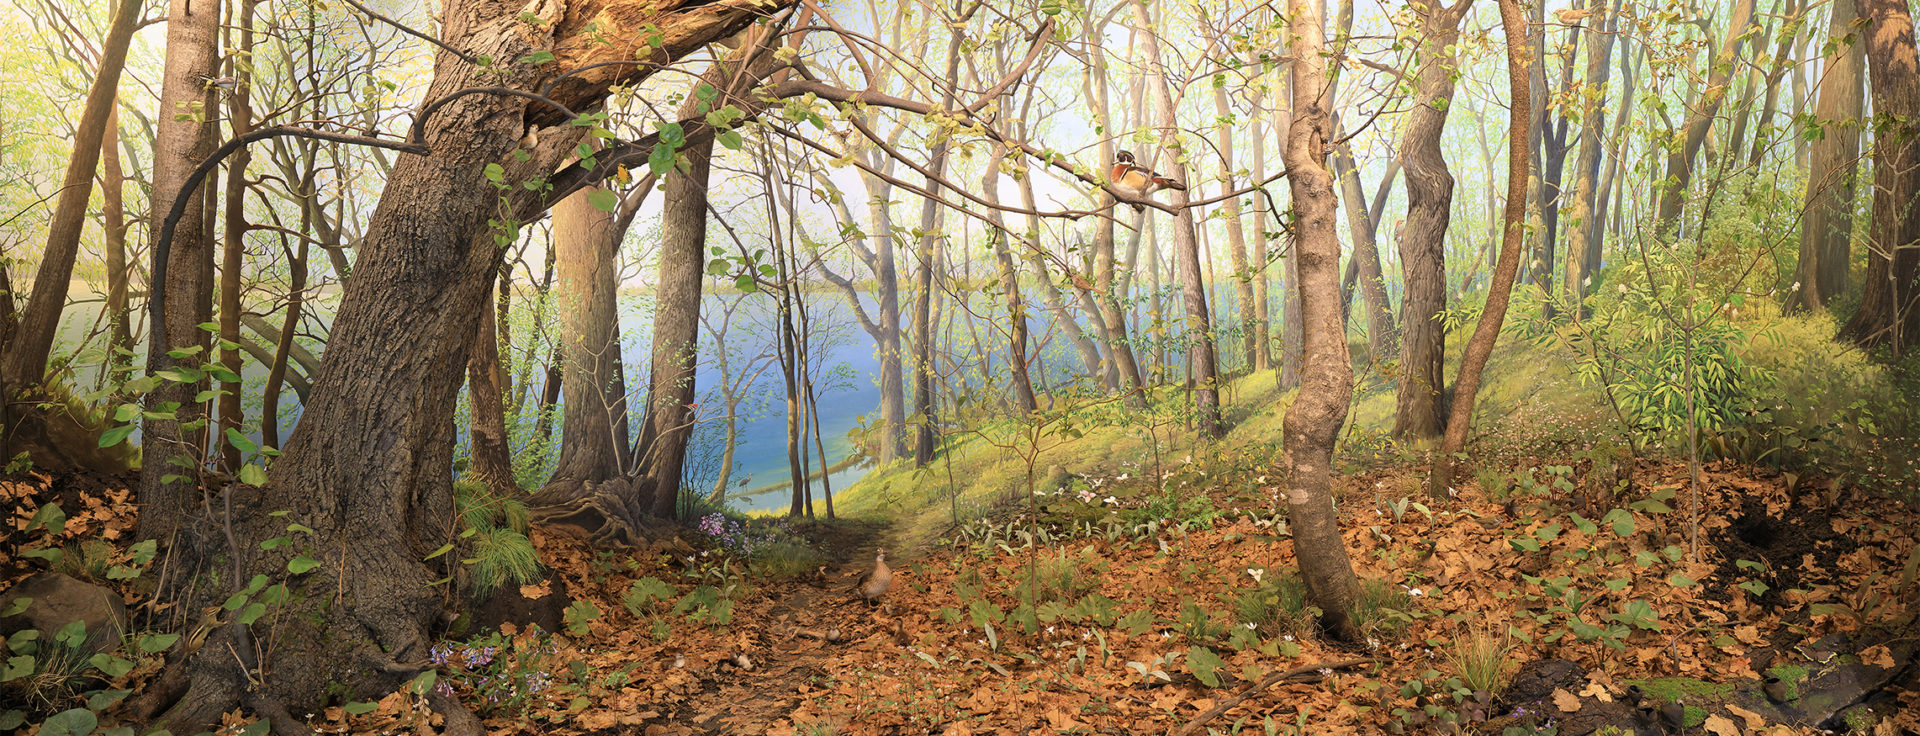 a forest scene from the big woods diorama